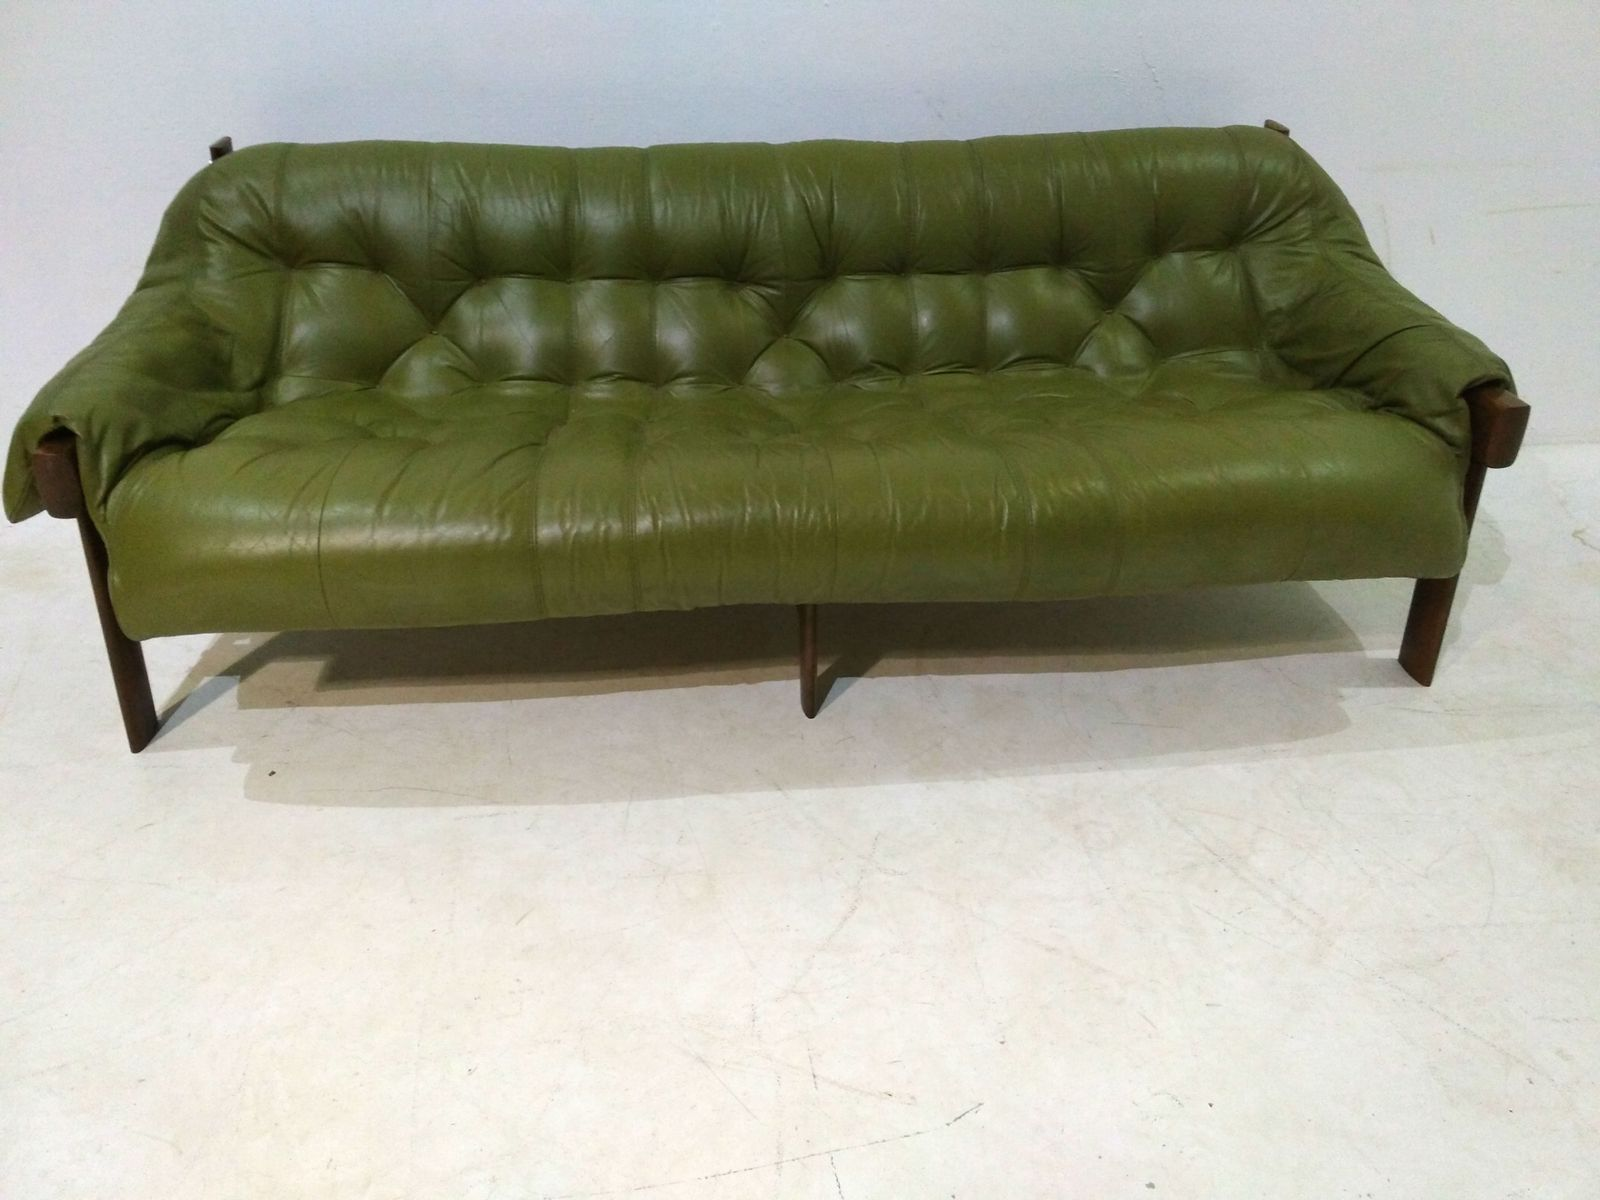 Model MP 041 Green Leather Sofa From Percival Lafer, 1960s